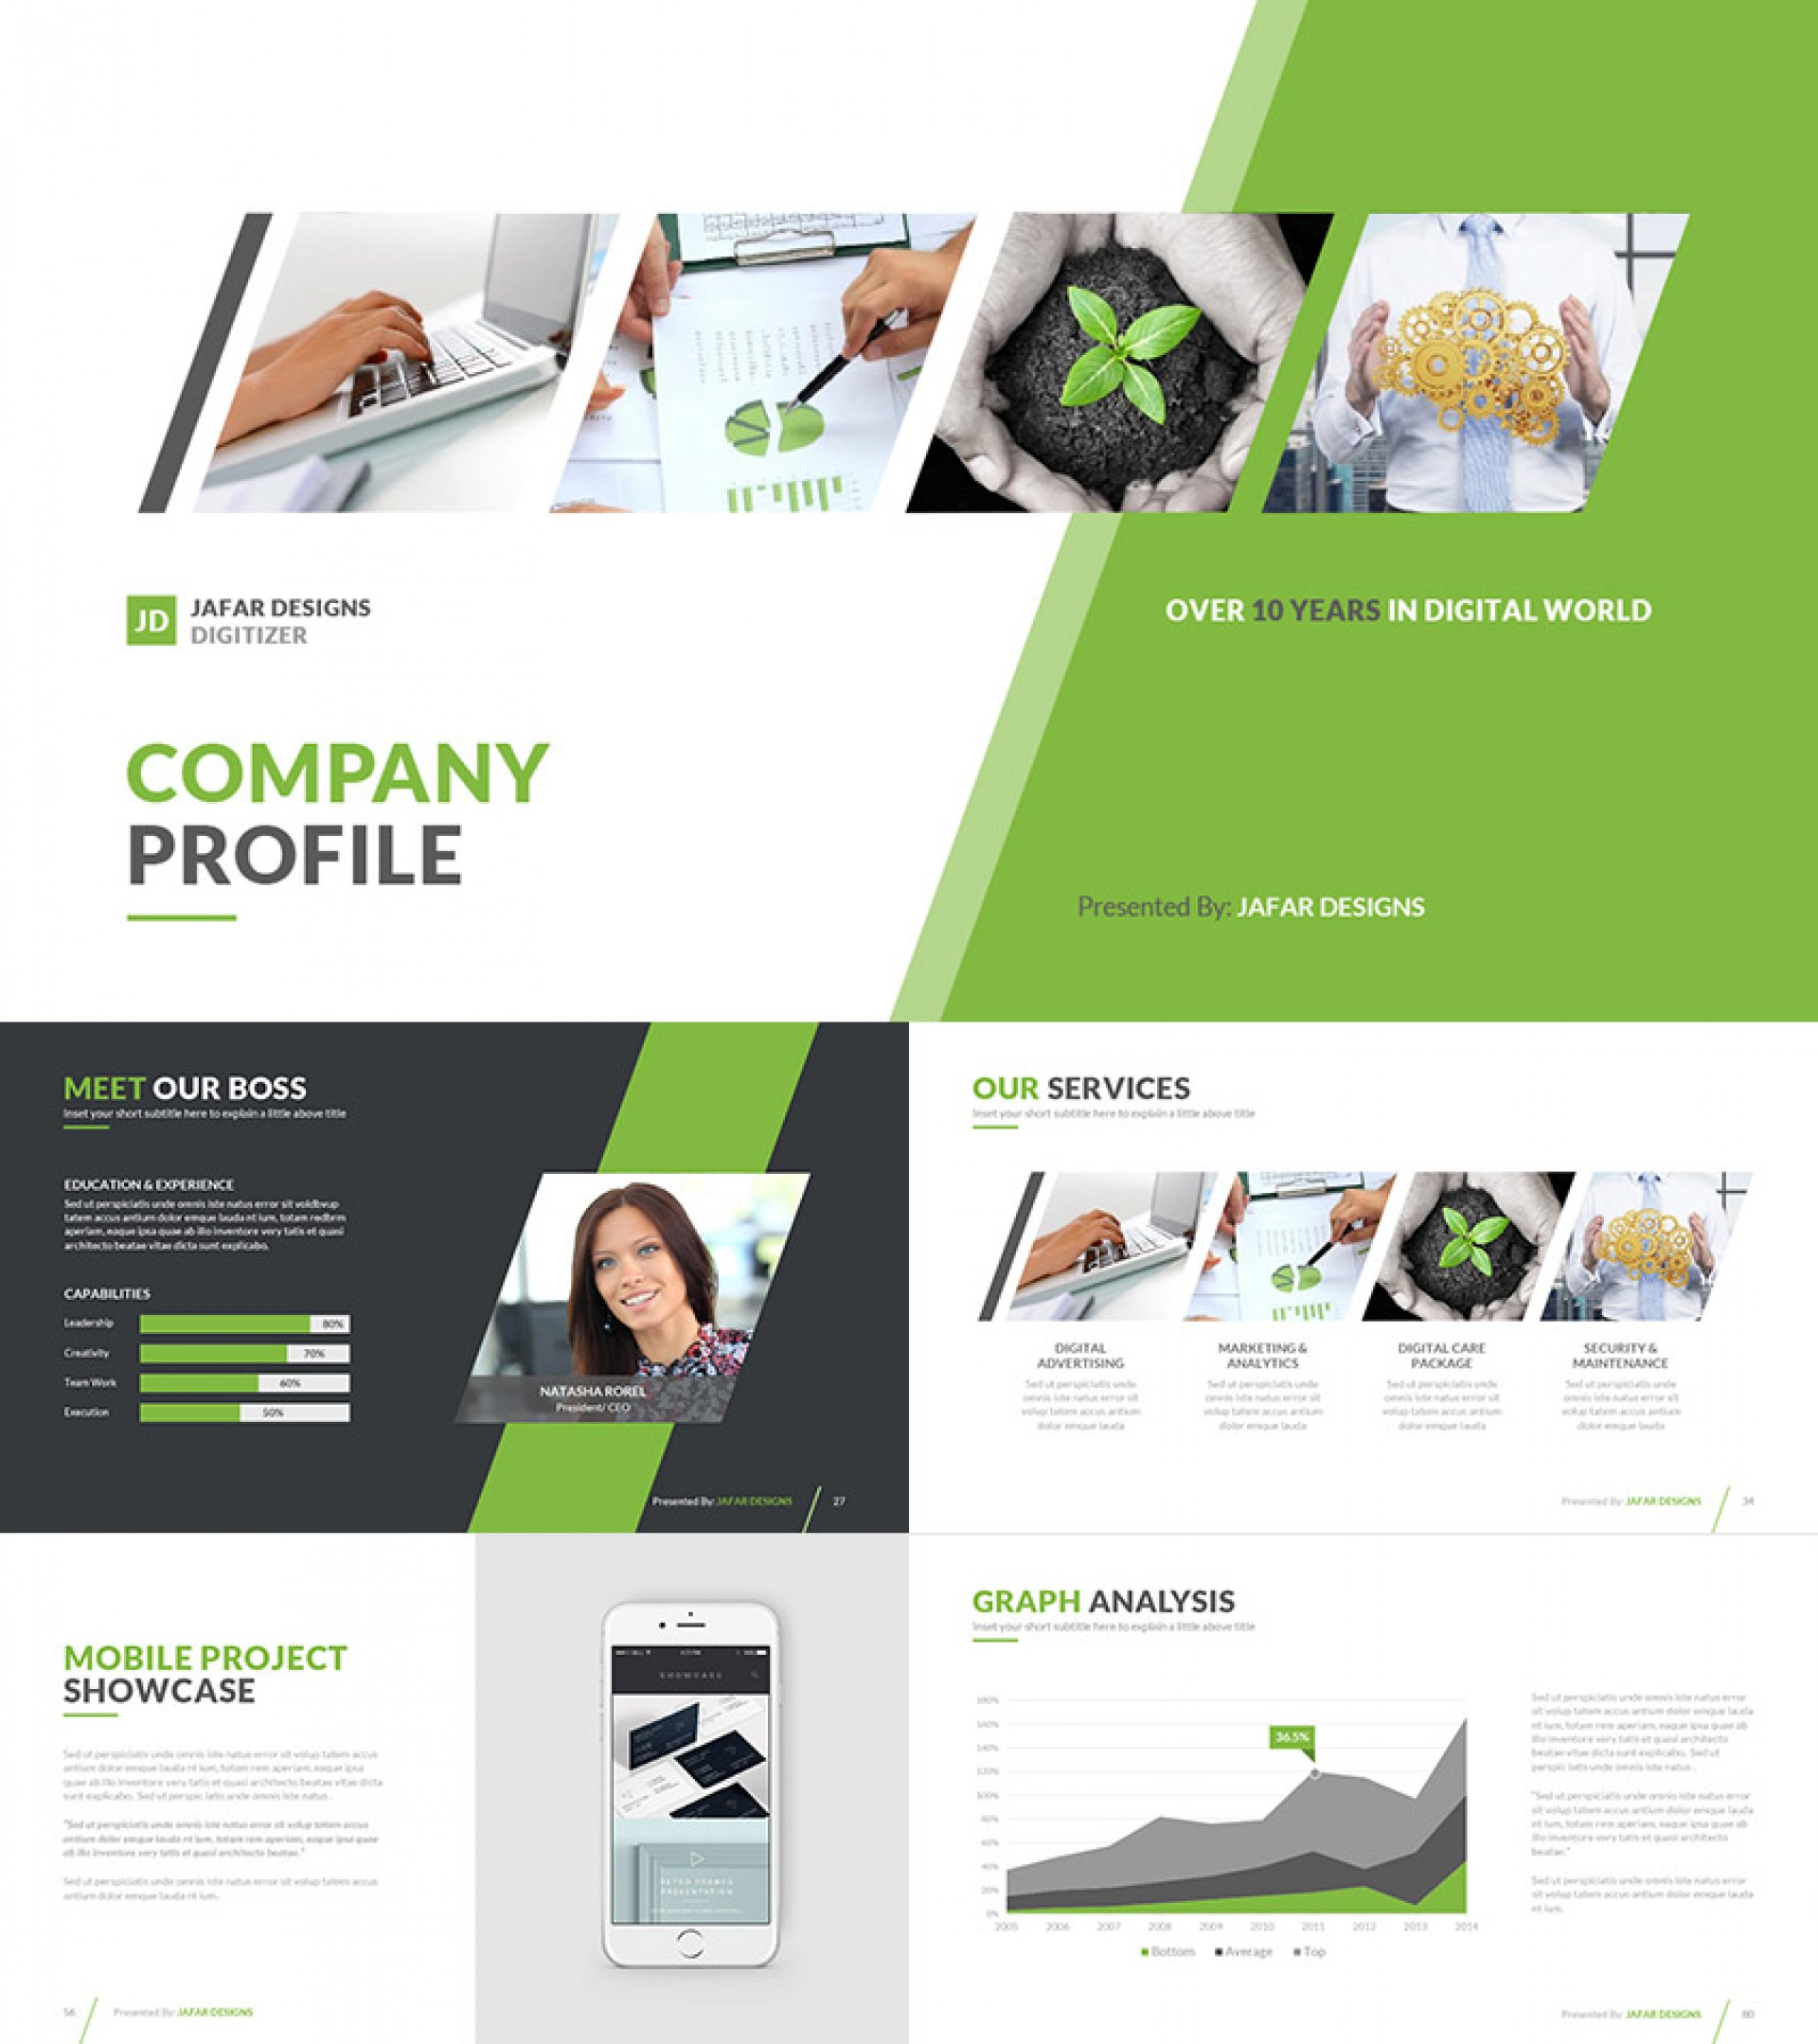 024 Company Profile Health Ppt Template Templates For Research Paper Phenomenal Presentation Powerpoint Format 1920